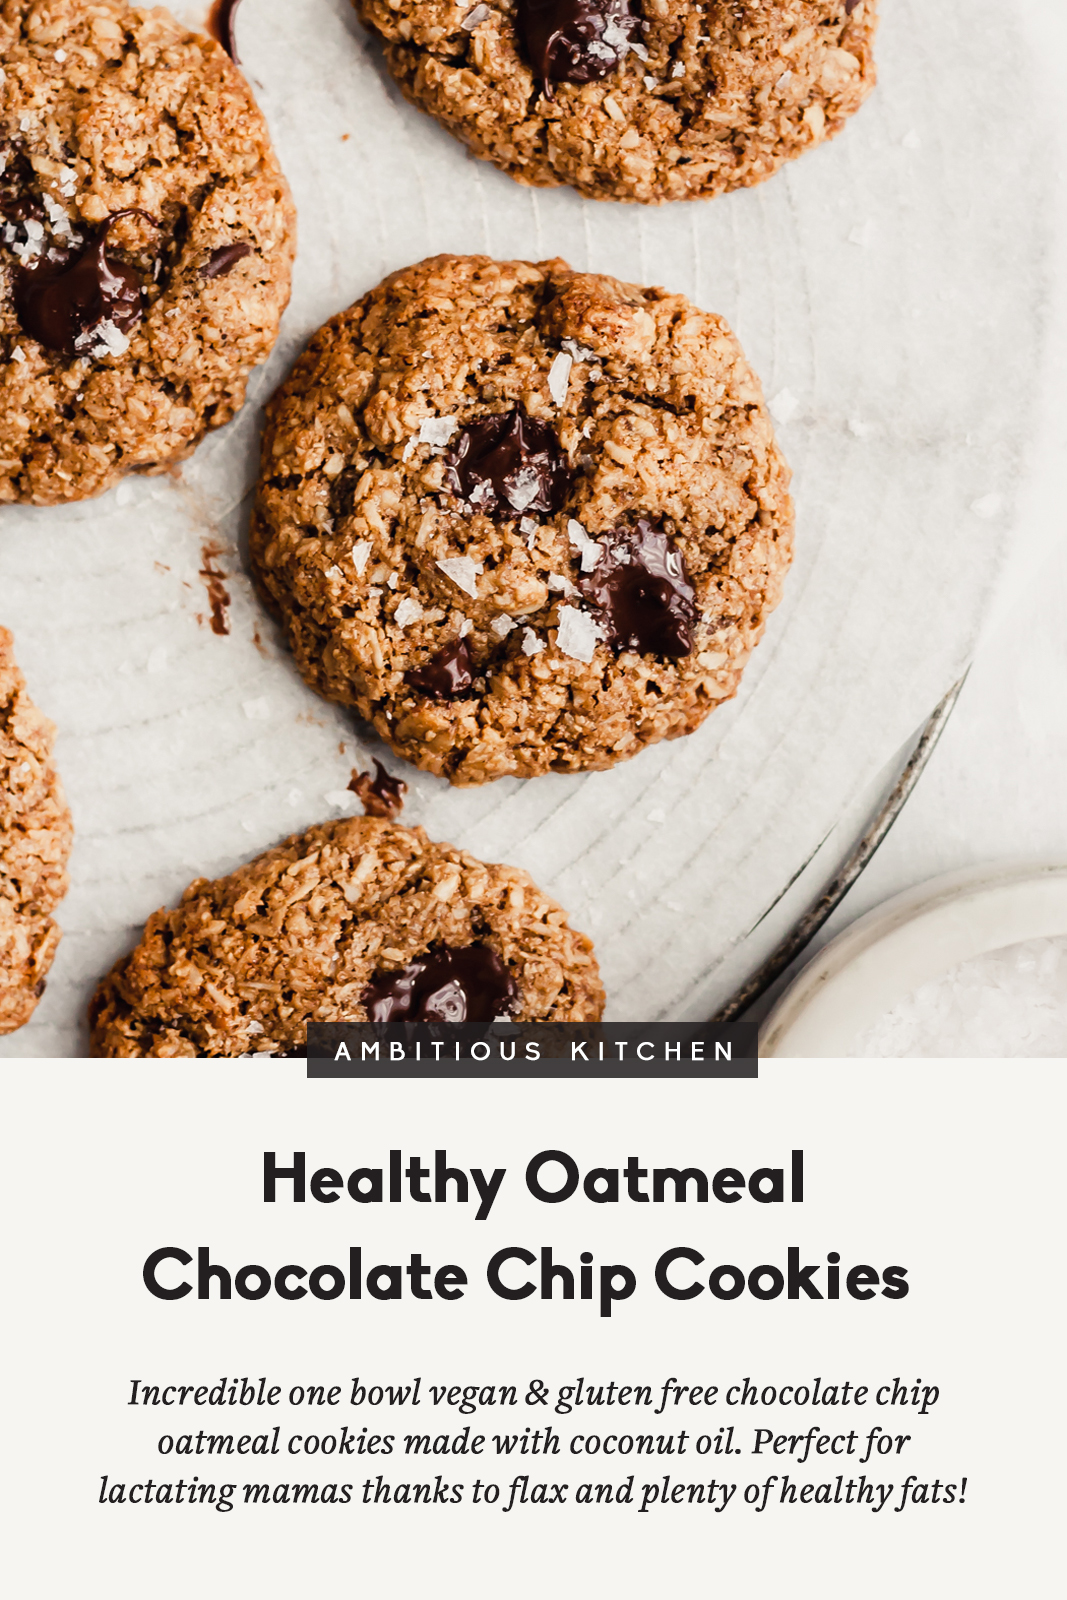 healthy oatmeal chocolate chip cookies with a title underneath